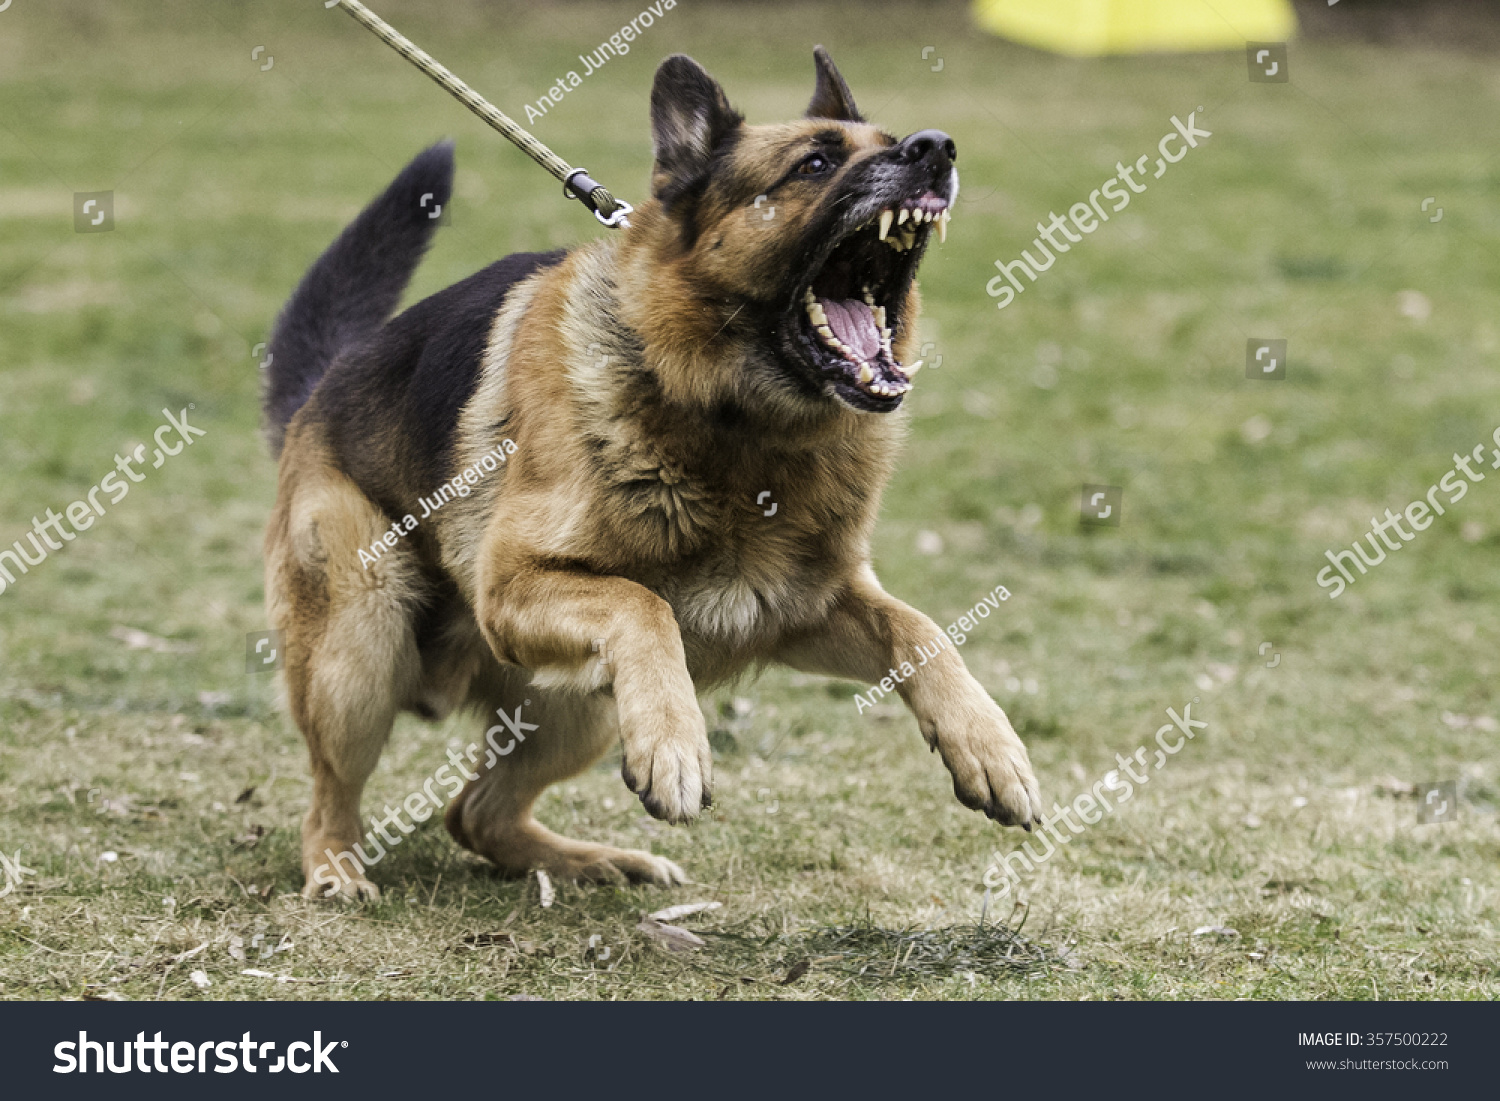 german aggression Find out how to control and stop aggressive behavior in german shepherds aggressive behavior in german shepherds can become a problem that can be avoided.